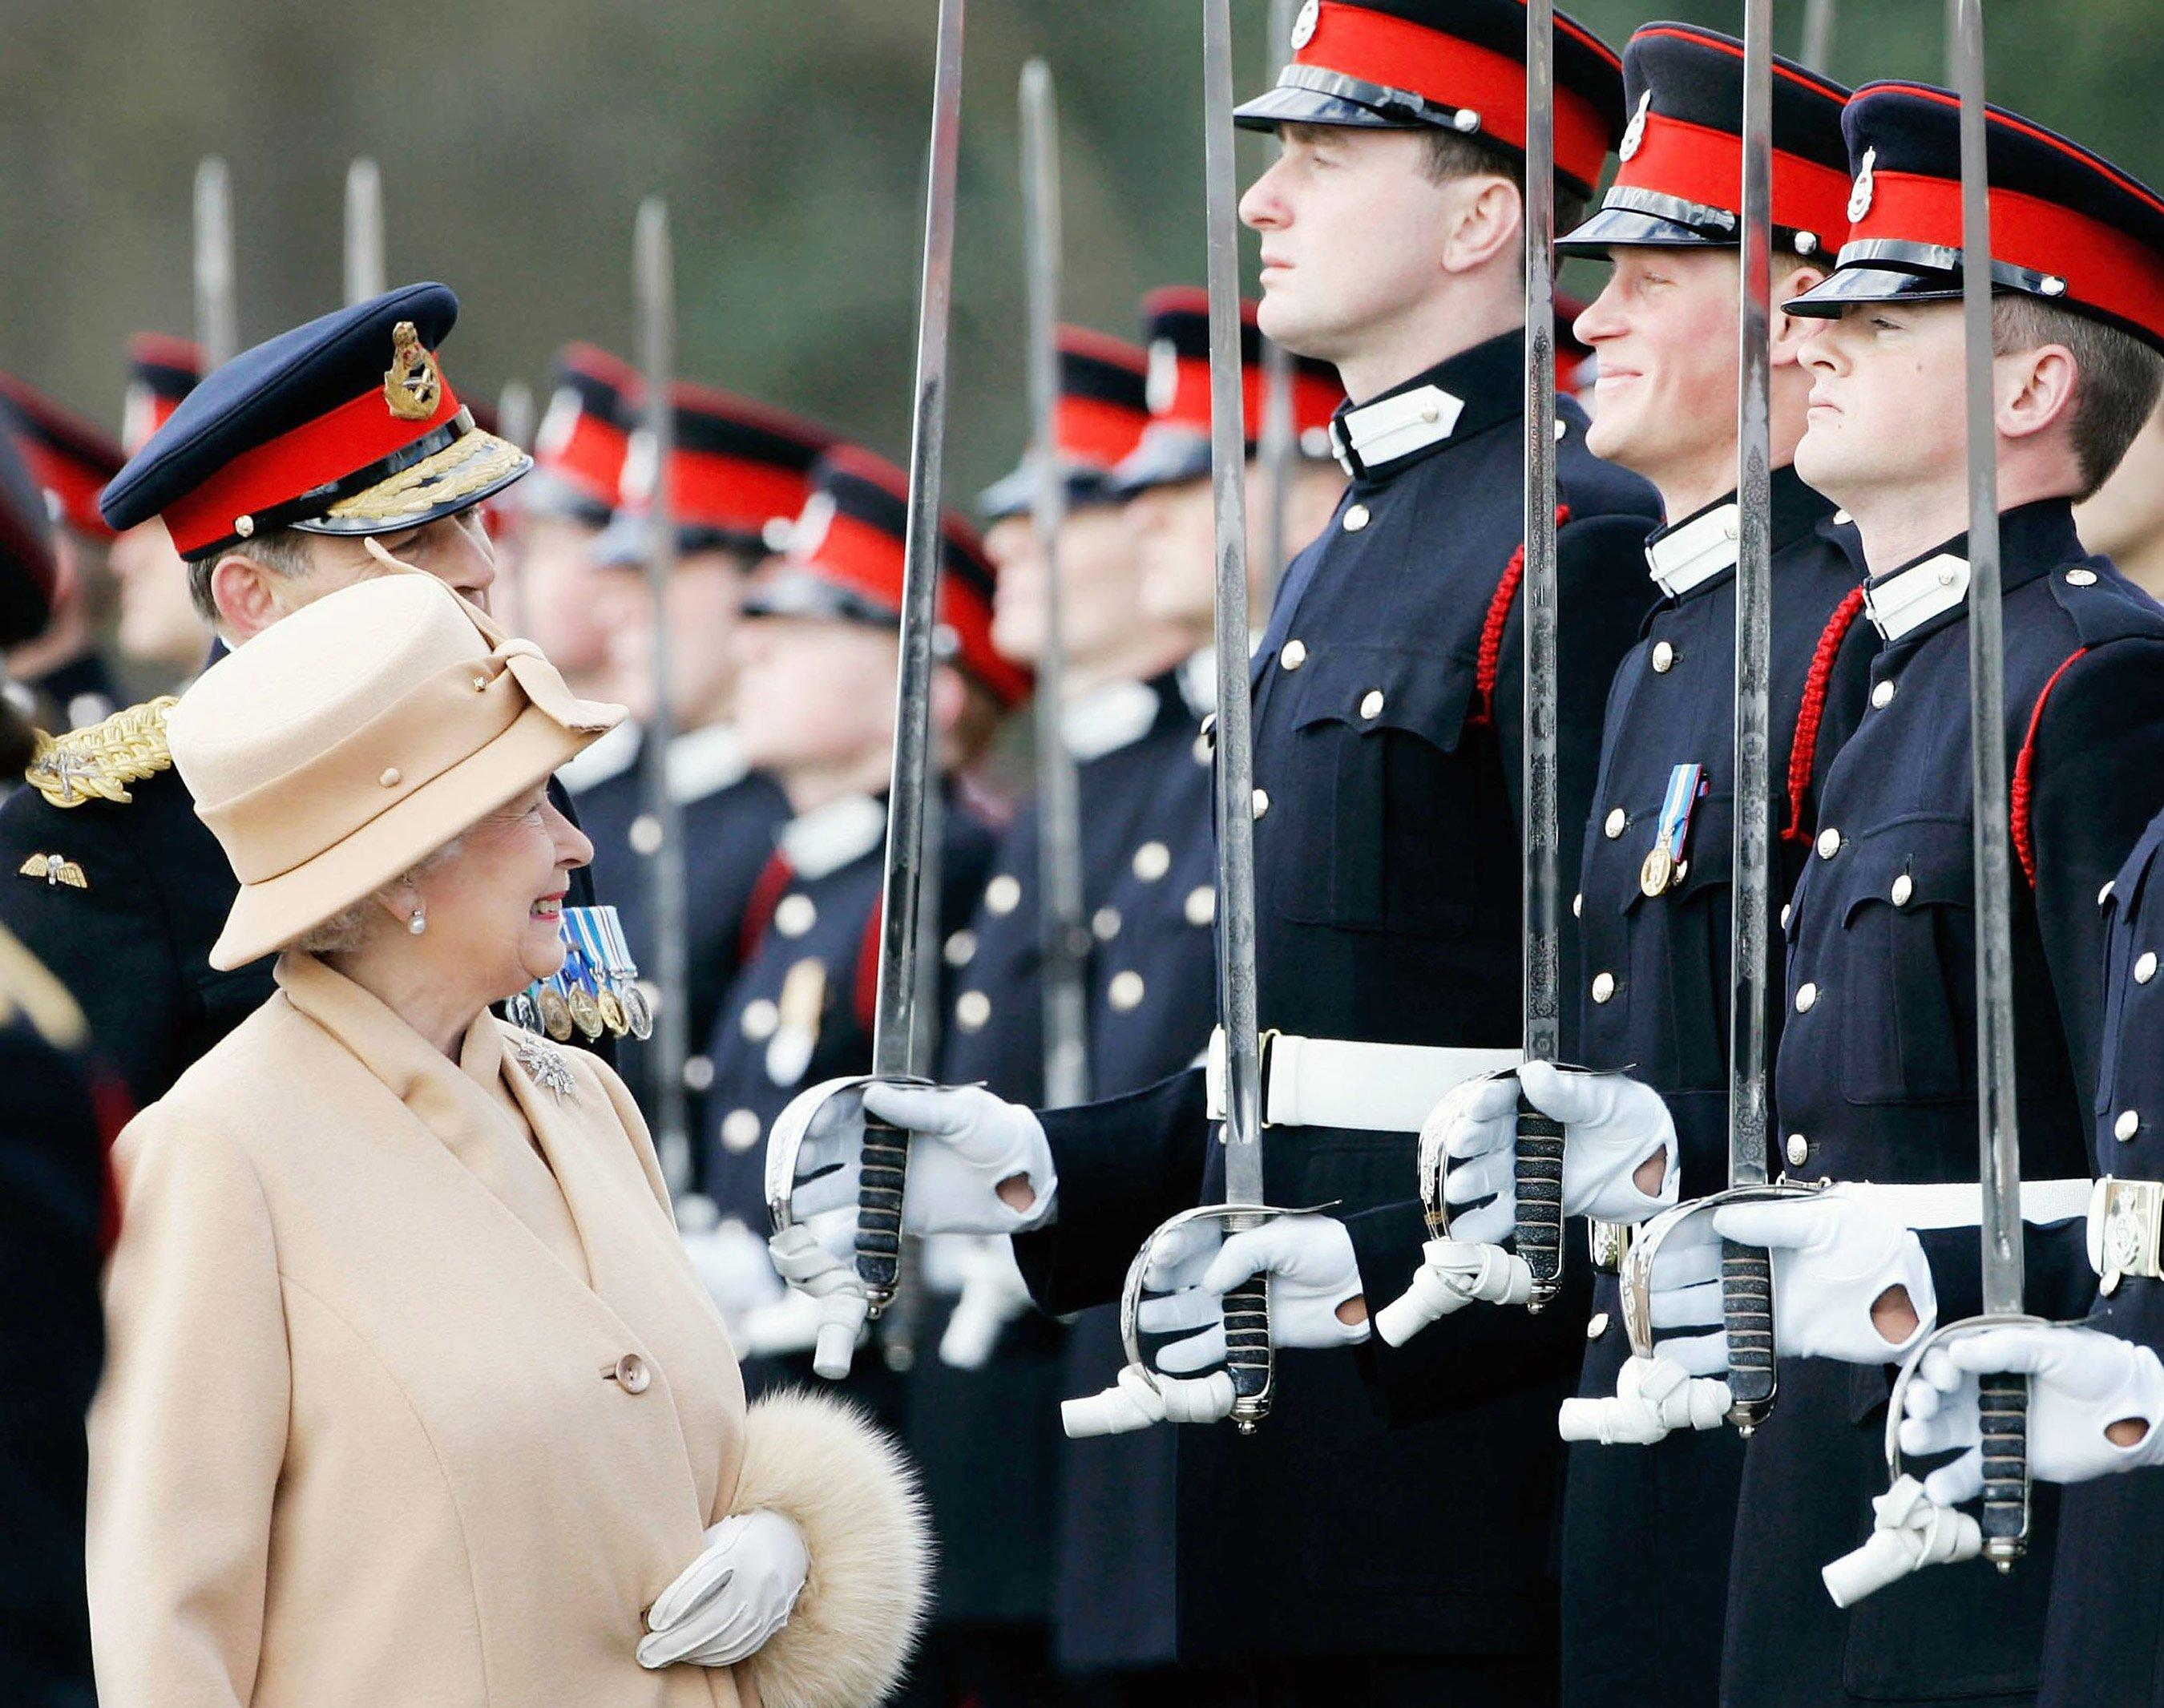 The Queen and Harry share a sweet moment as she inspects soldiers (including her own grandson) at the passing-out Sovereign's Parade at Sandhurst Military Academy in 2006.